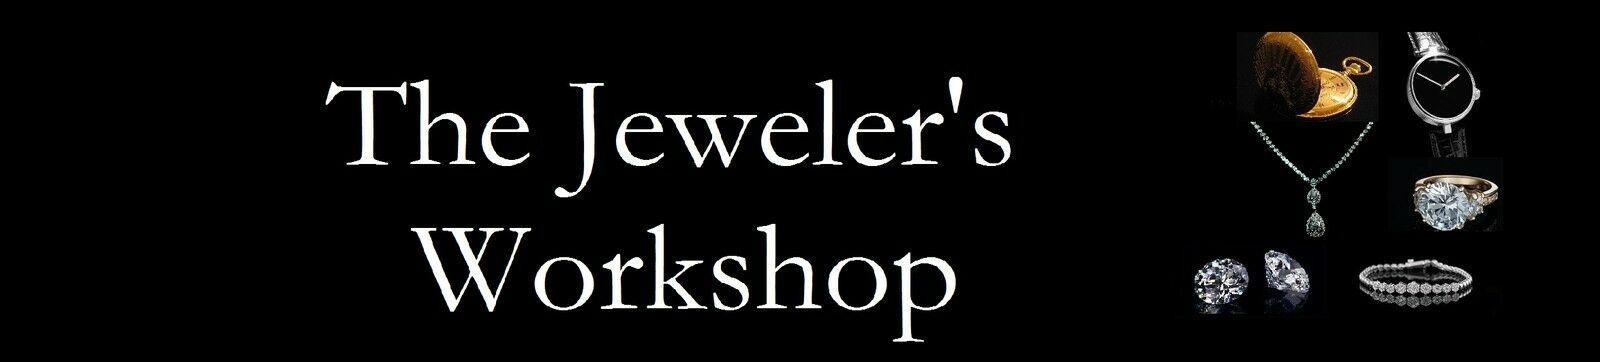 Jewelers Workshop